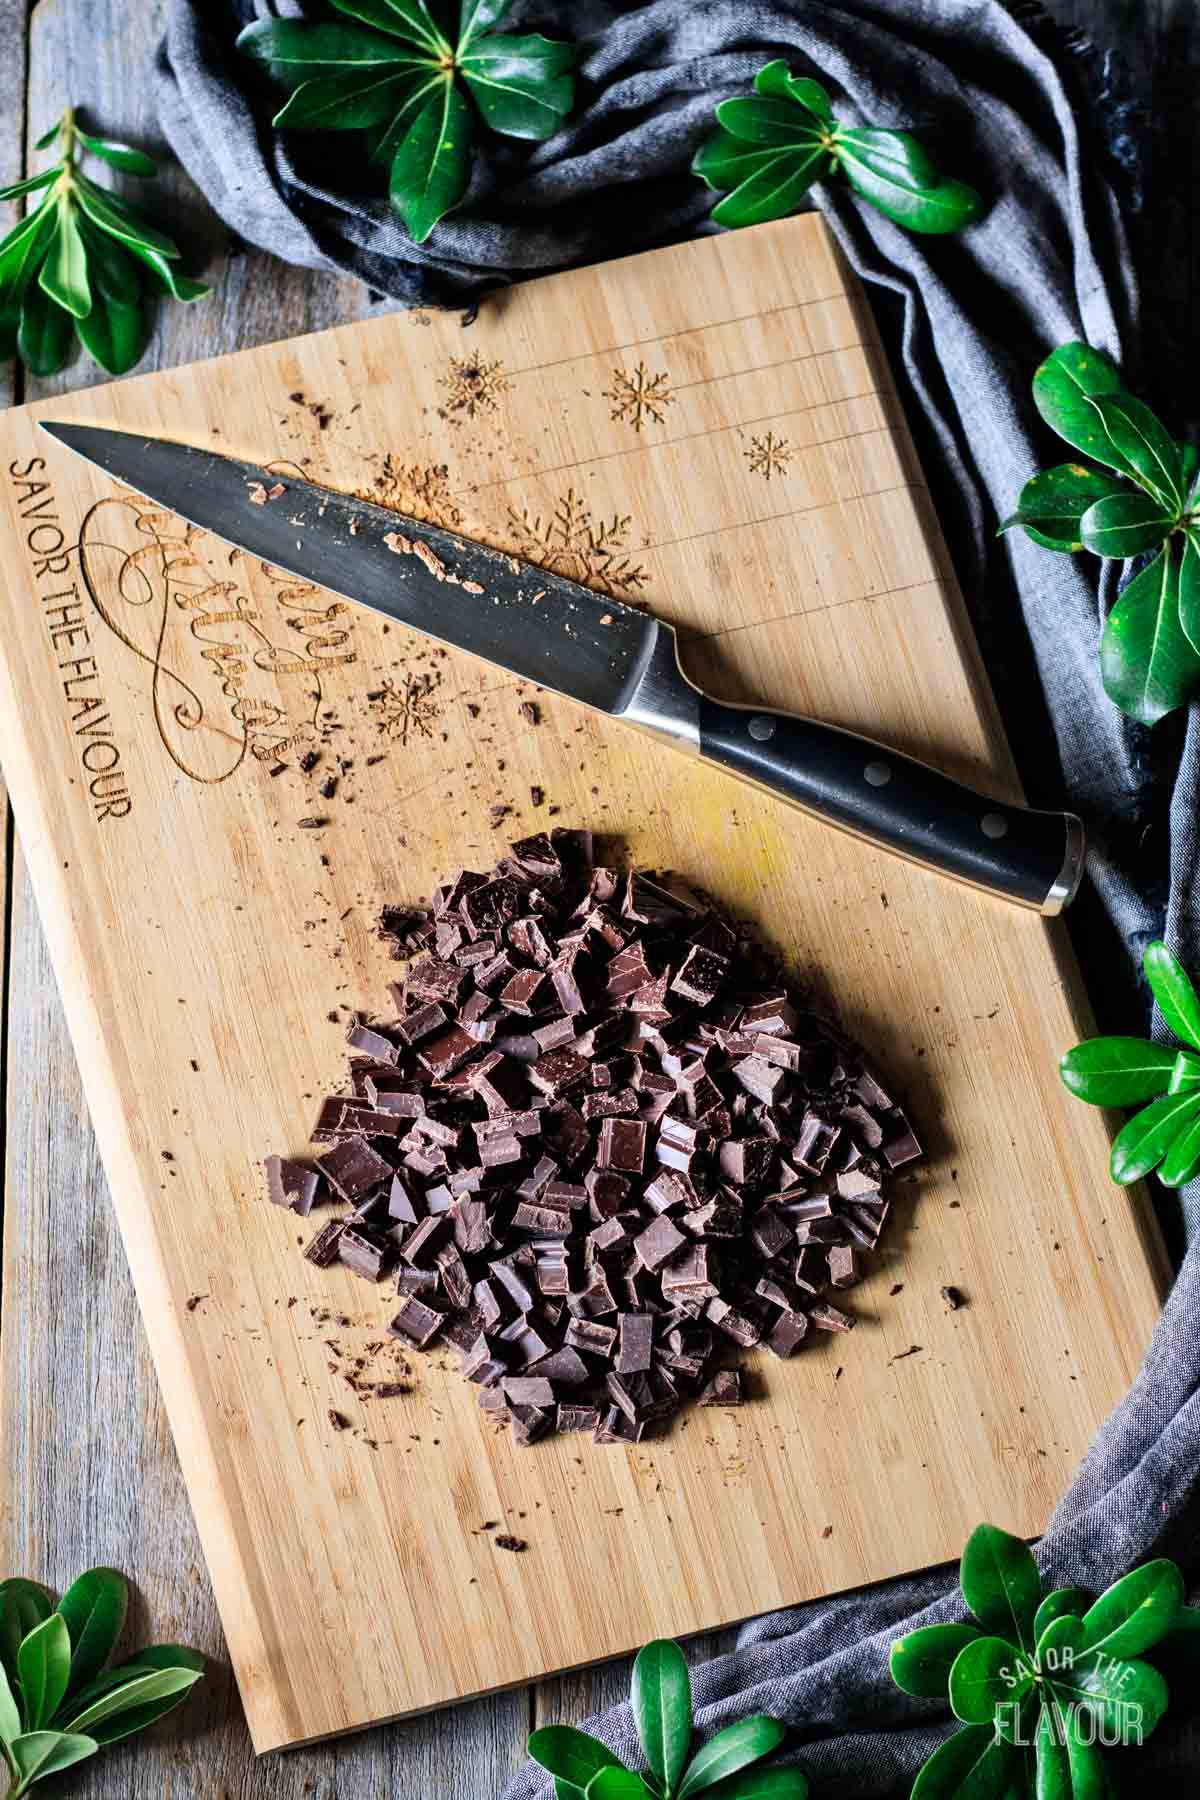 chopped dark chocolate on a cutting board with a knife